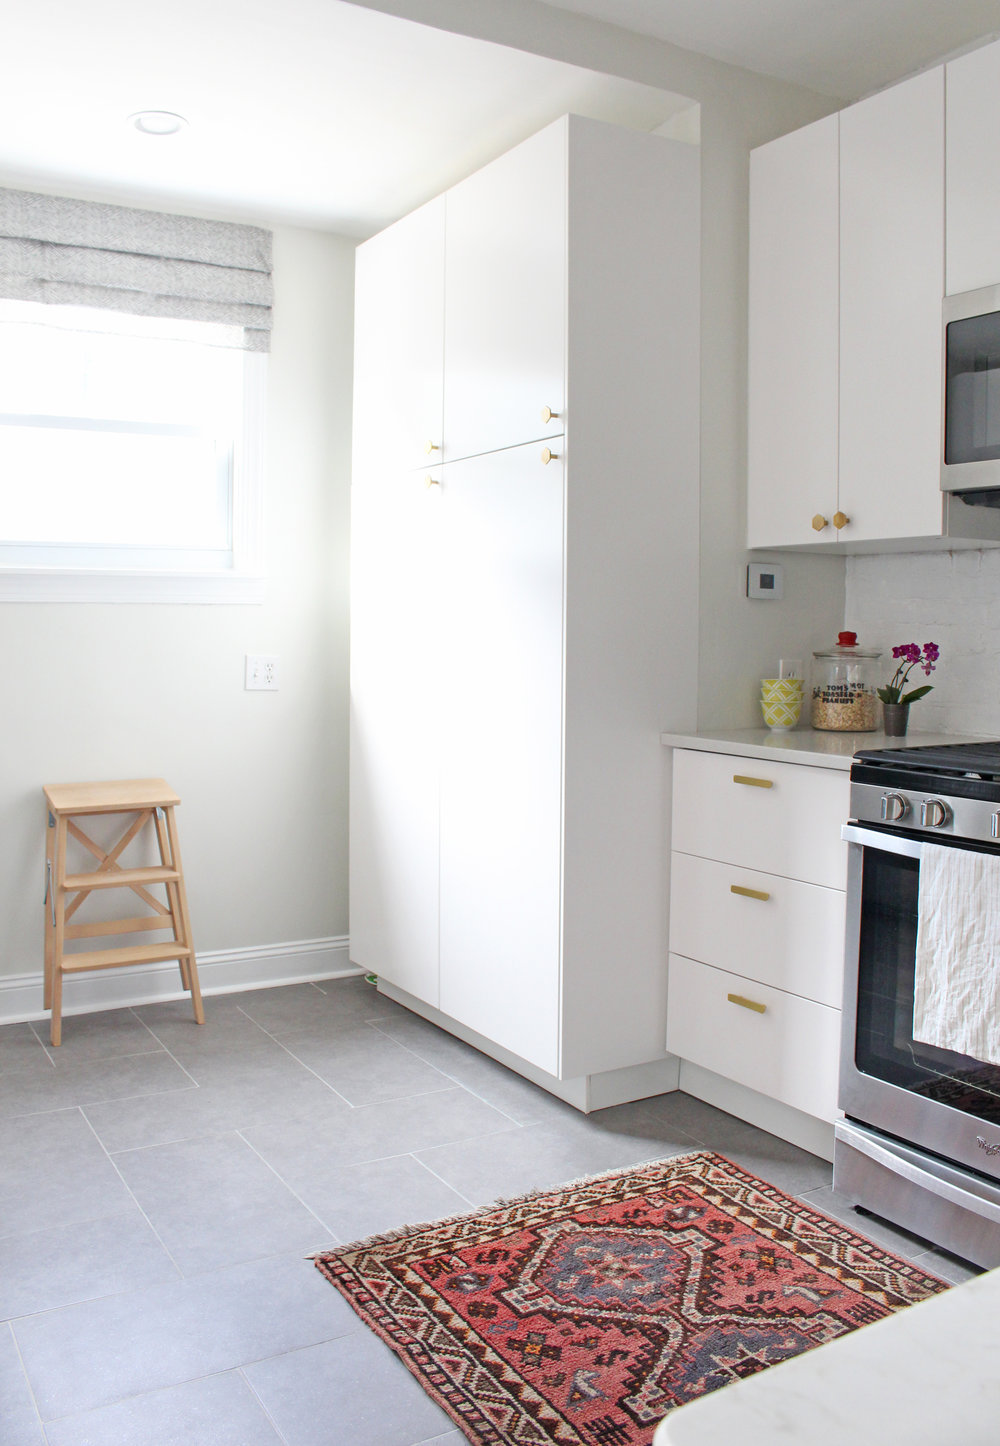 Modern-White-Kitchen-Renovation-Ikea-Sektion-19.jpg